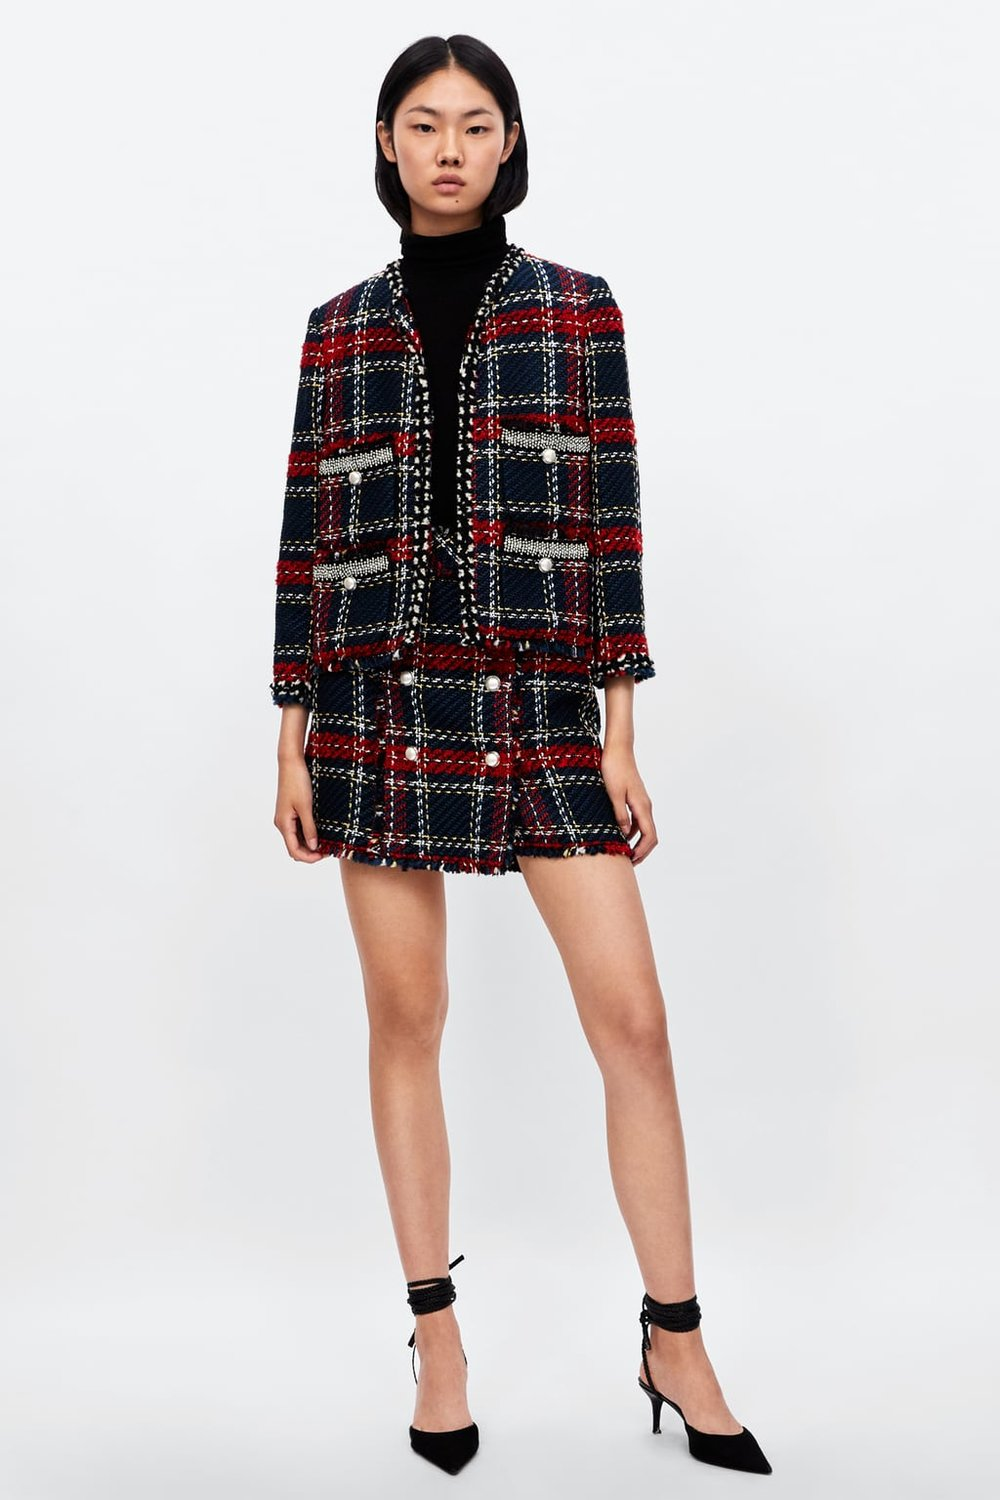 Zara Red Tweed Jacket.jpg